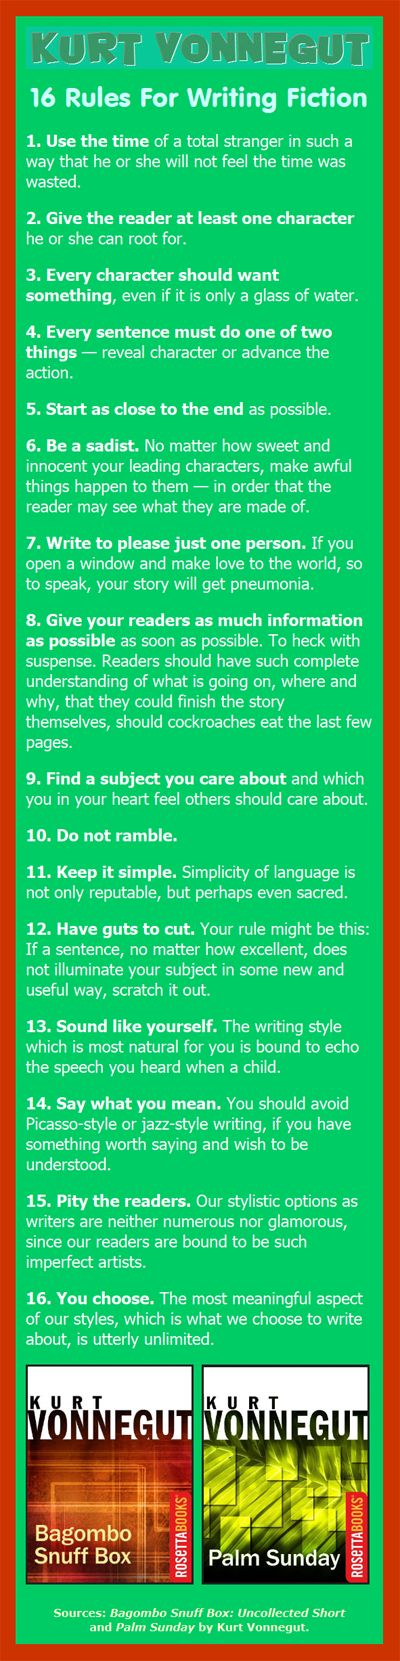 Kurt Vonnegut: 16 Rules for Writing Fiction